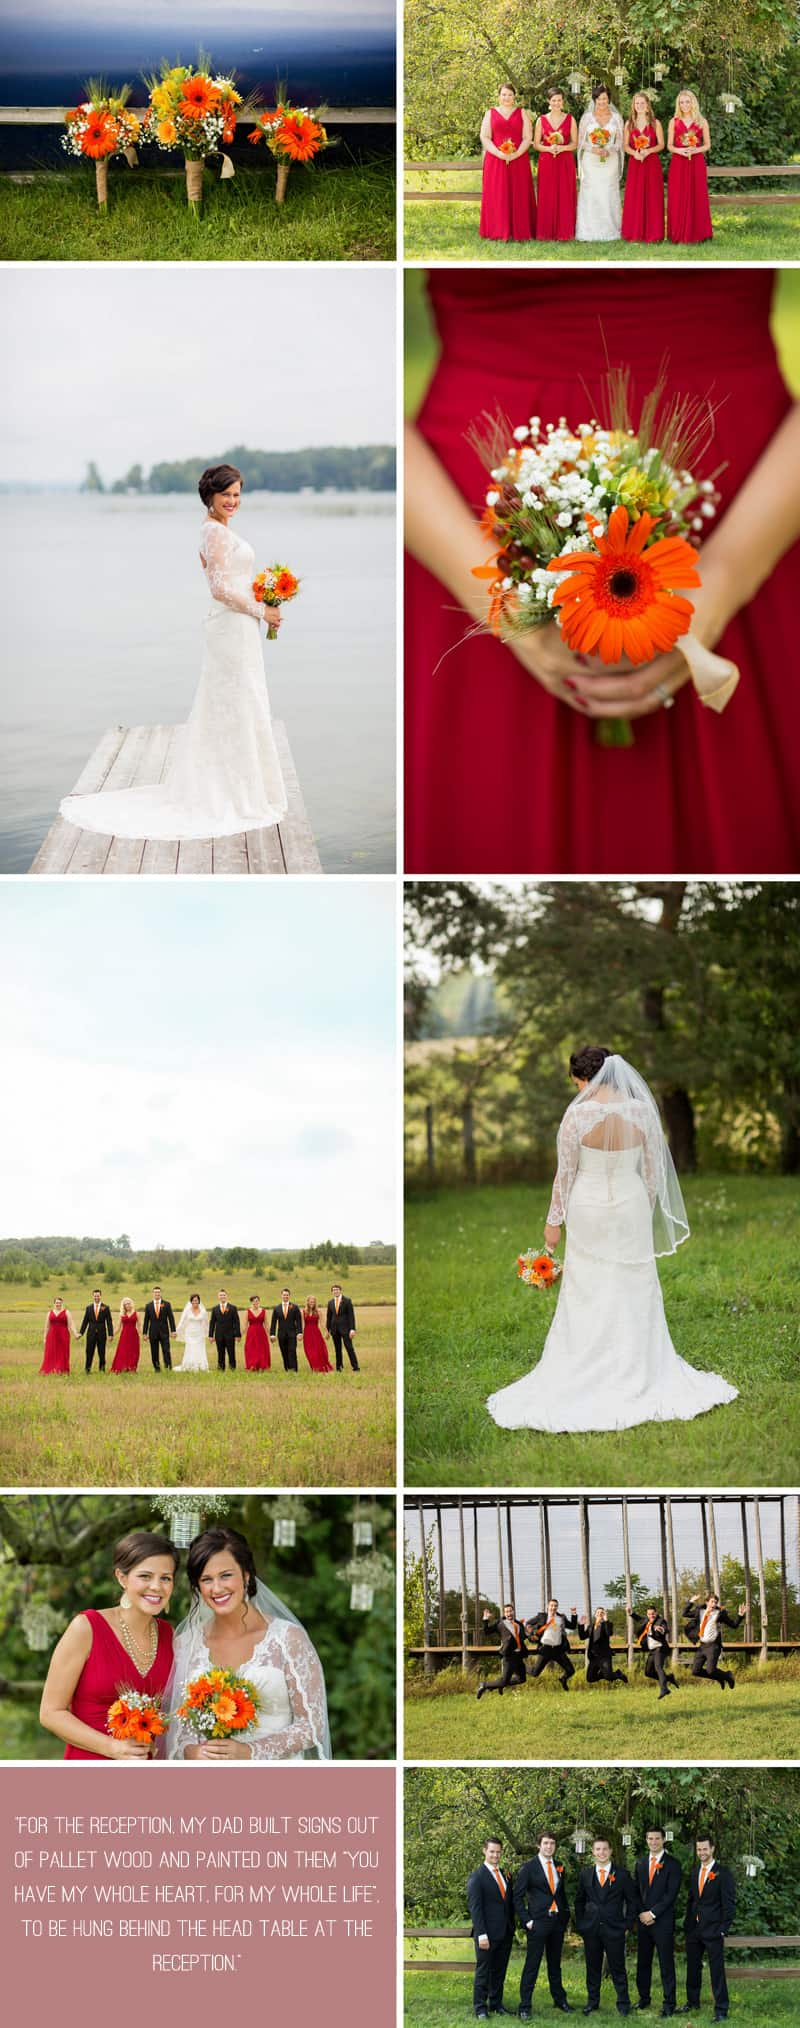 A Romantic Fall Wedding in a Rustic Barn 4